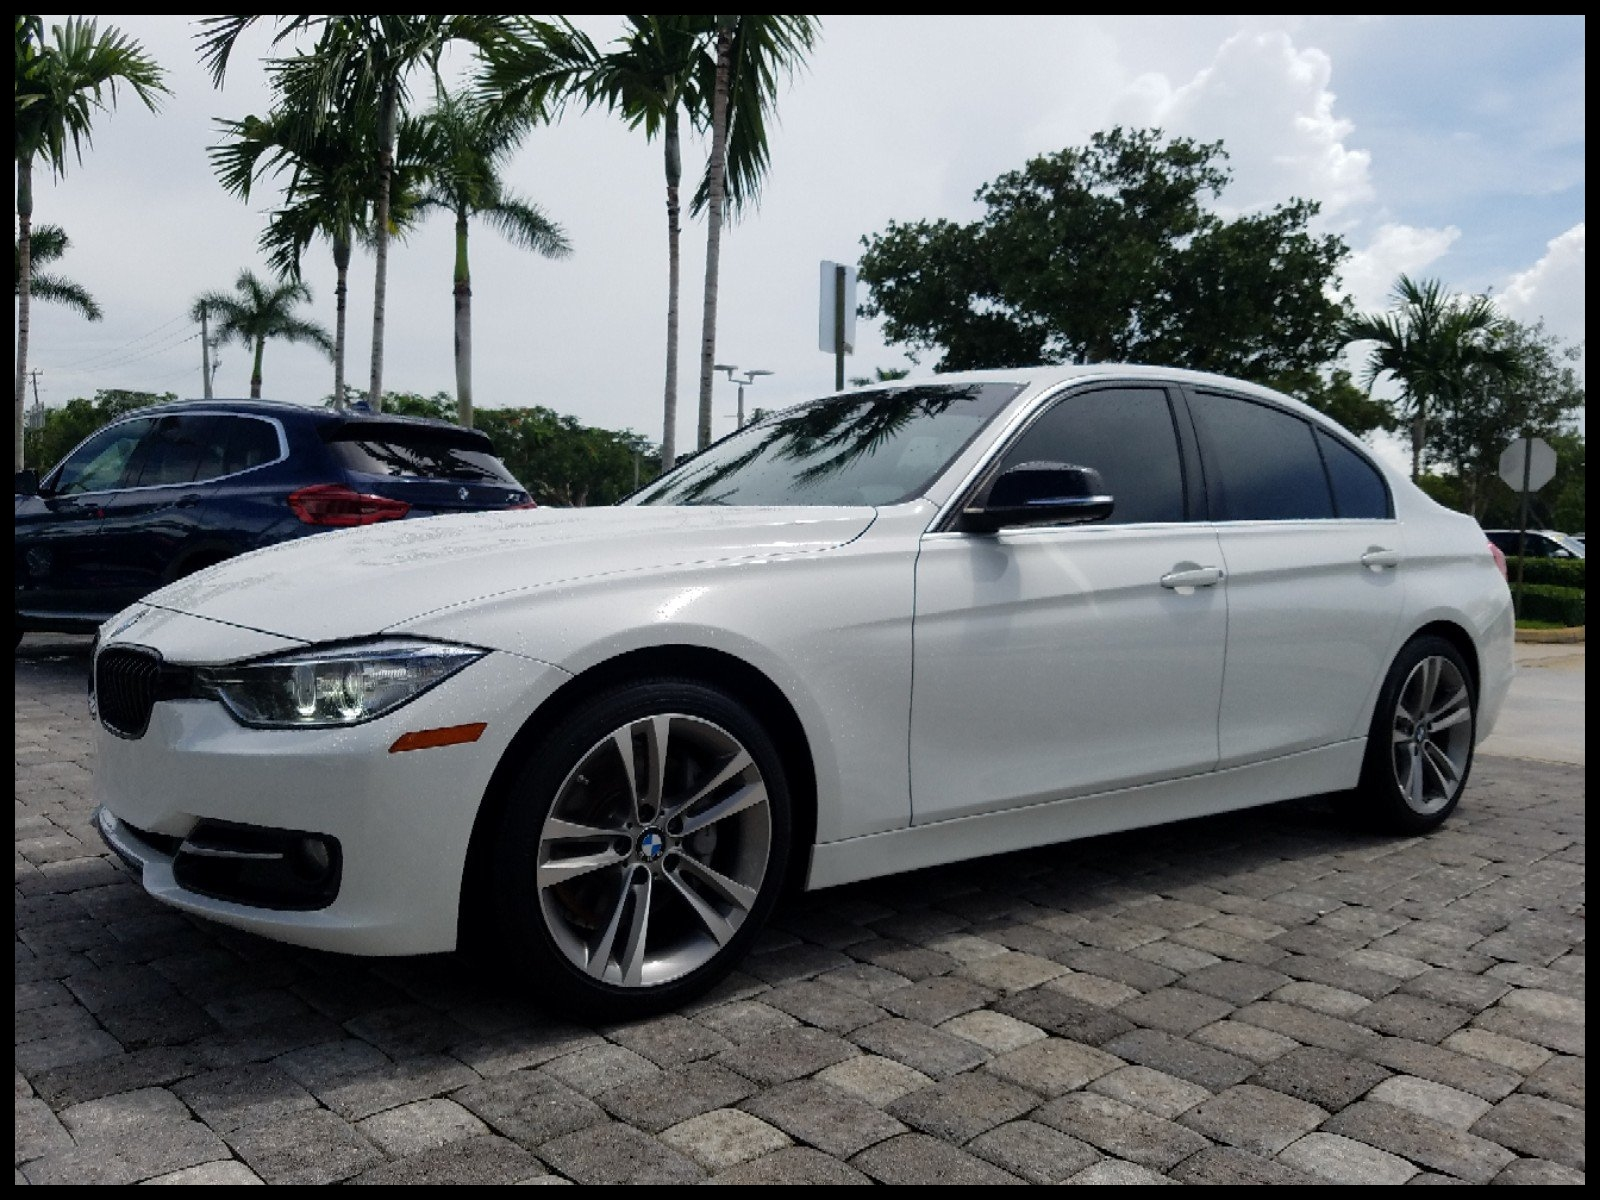 Certified 2015 BMW 335i w South Africa For Sale in Pembroke Pines FL Serving Miami